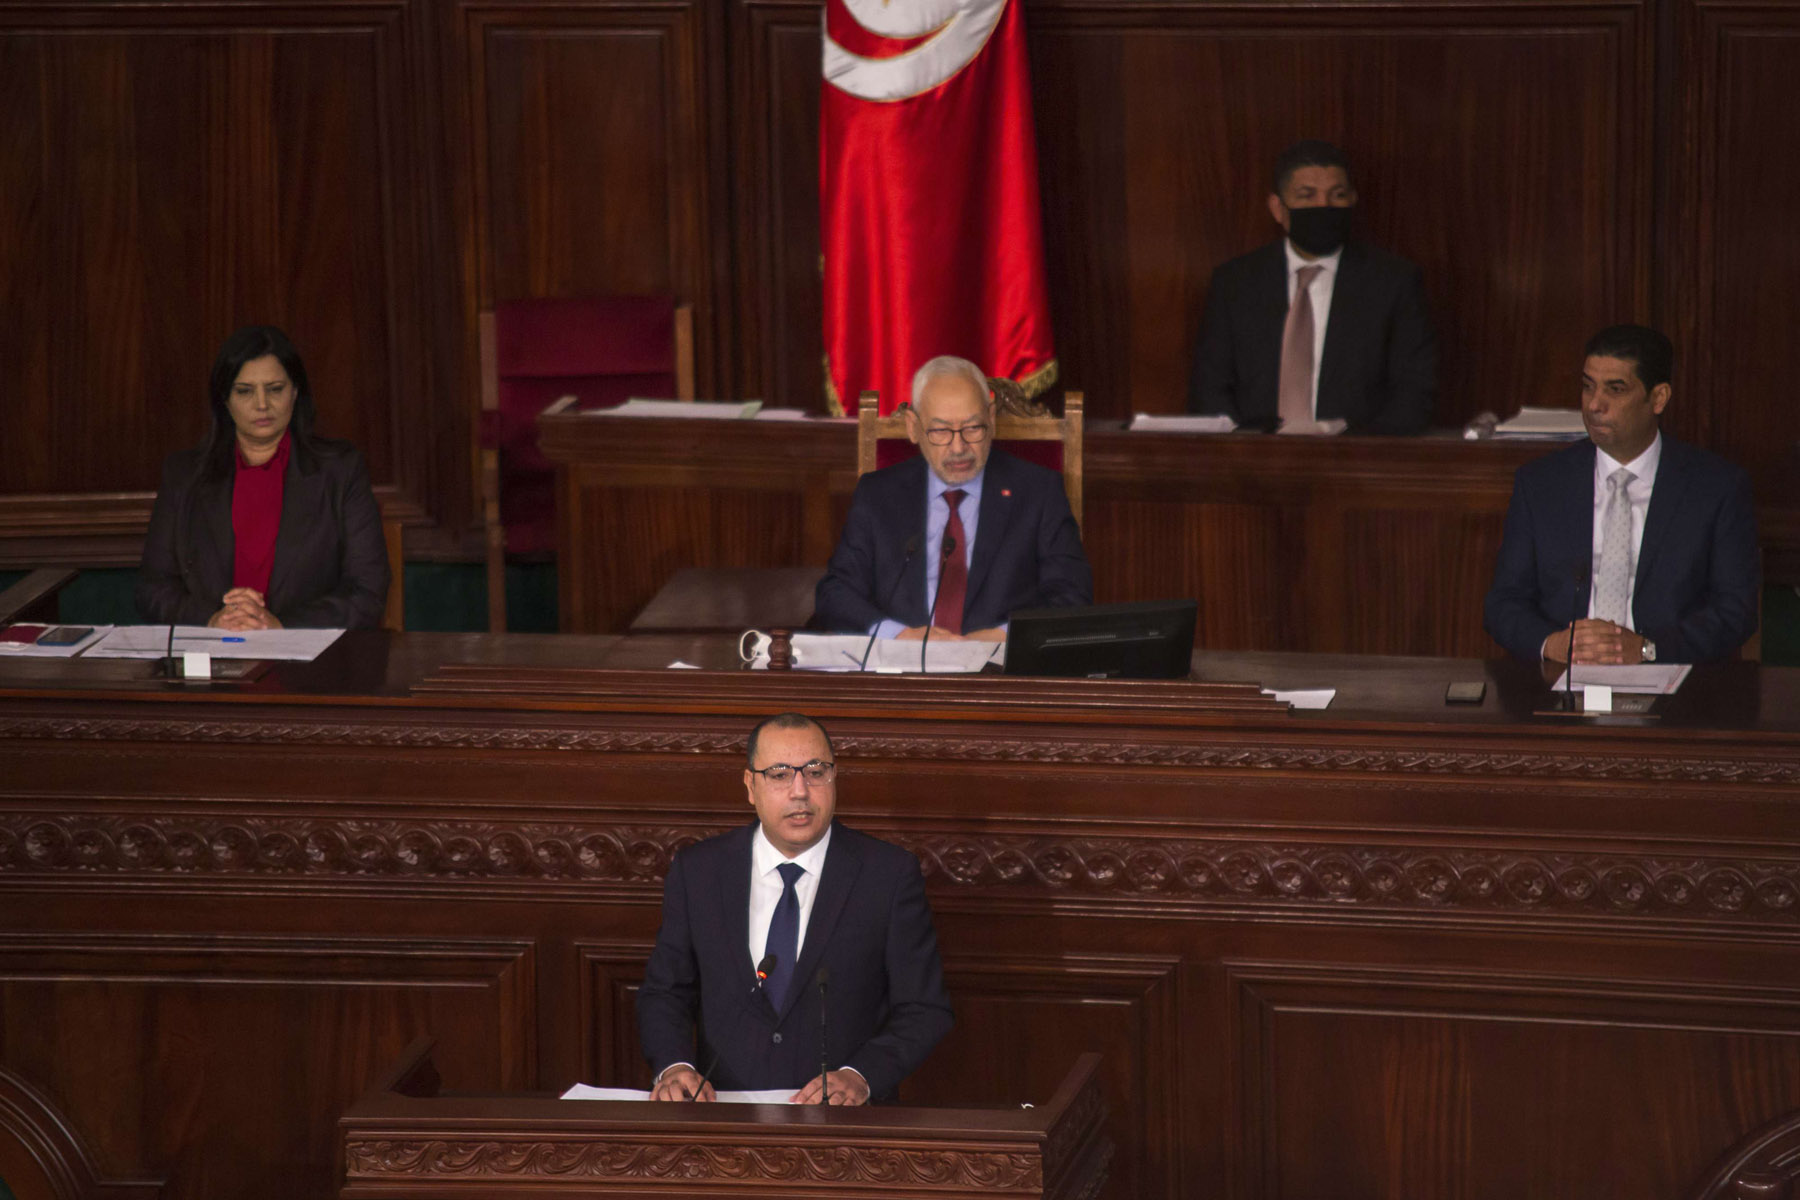 Tunisian Prime Minister Hichem Mechichi, foreground, delivers his speech in the Parliament in Tunis, Januray 26, 2020, with the speaker in the background. (AP)